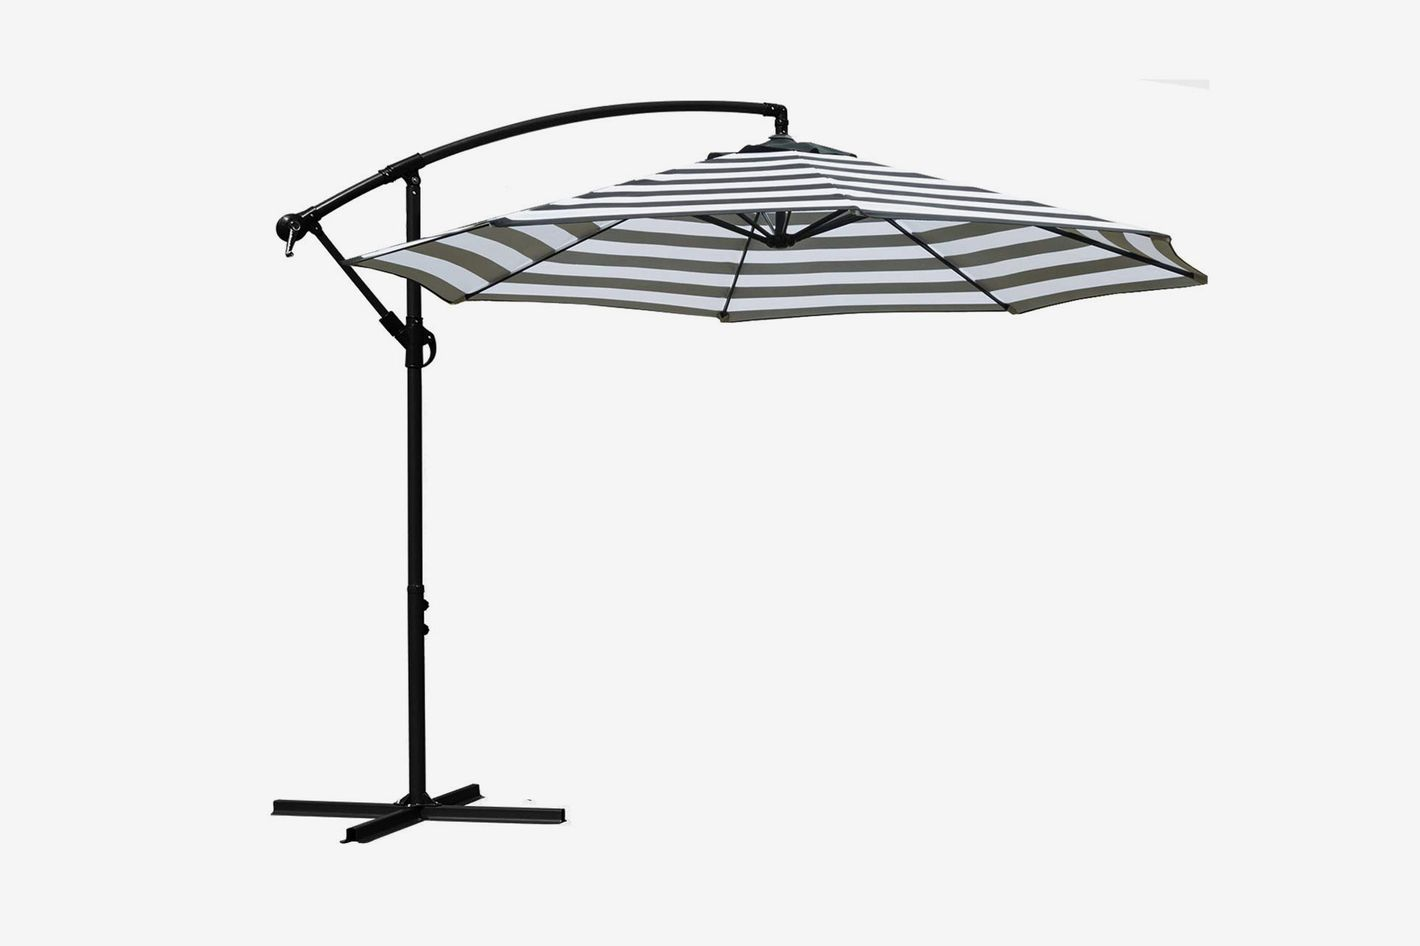 Sunnyglade 10' Outdoor Adjustable Offset Cantilever Hanging Patio Umbrella